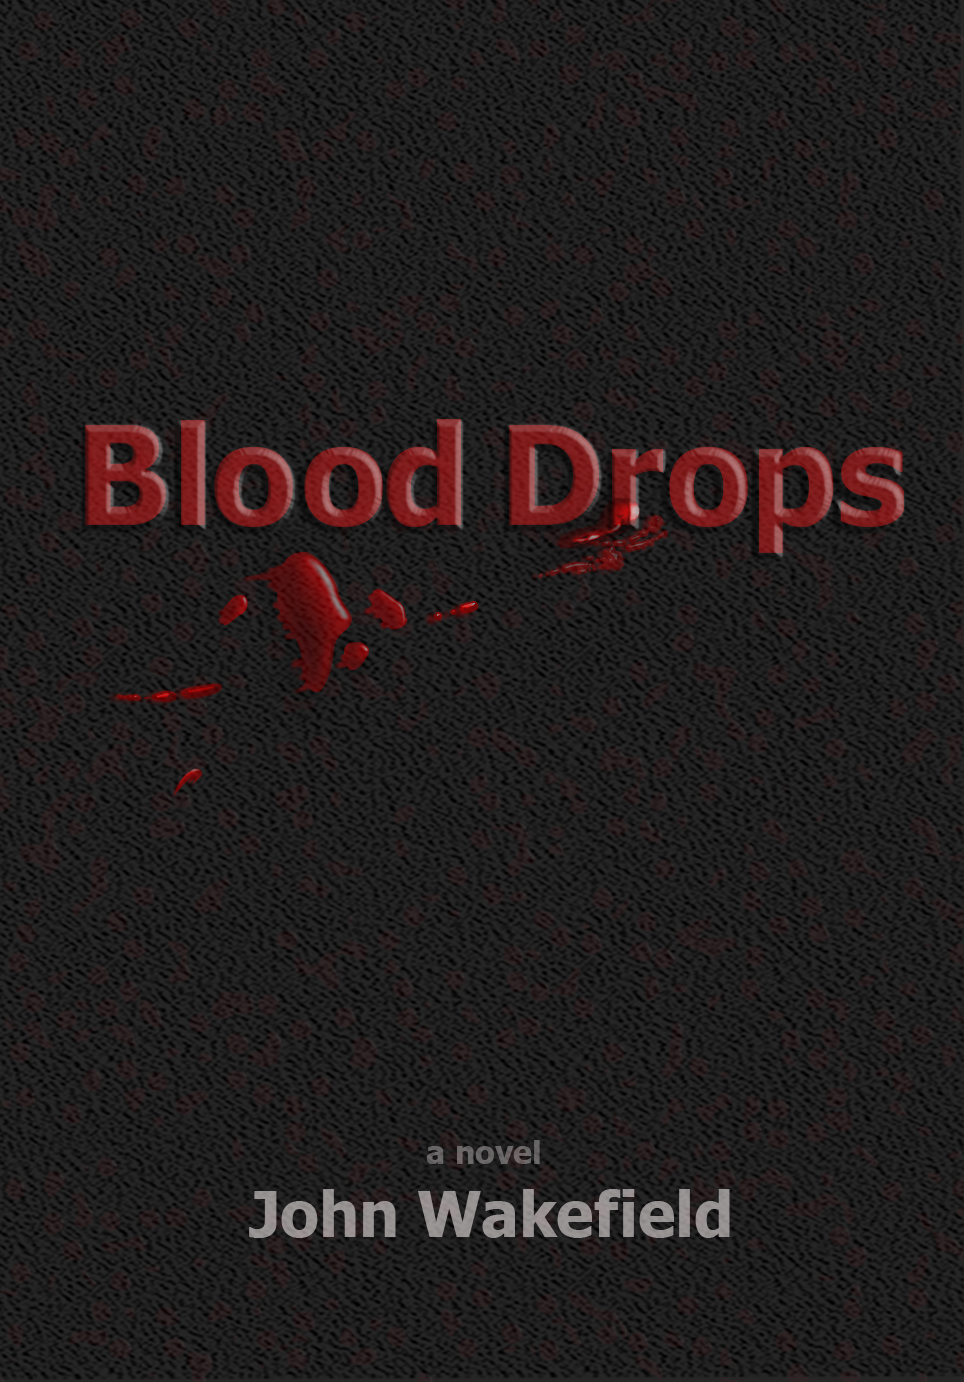 Blood_Drops_Book_Cover.jpg